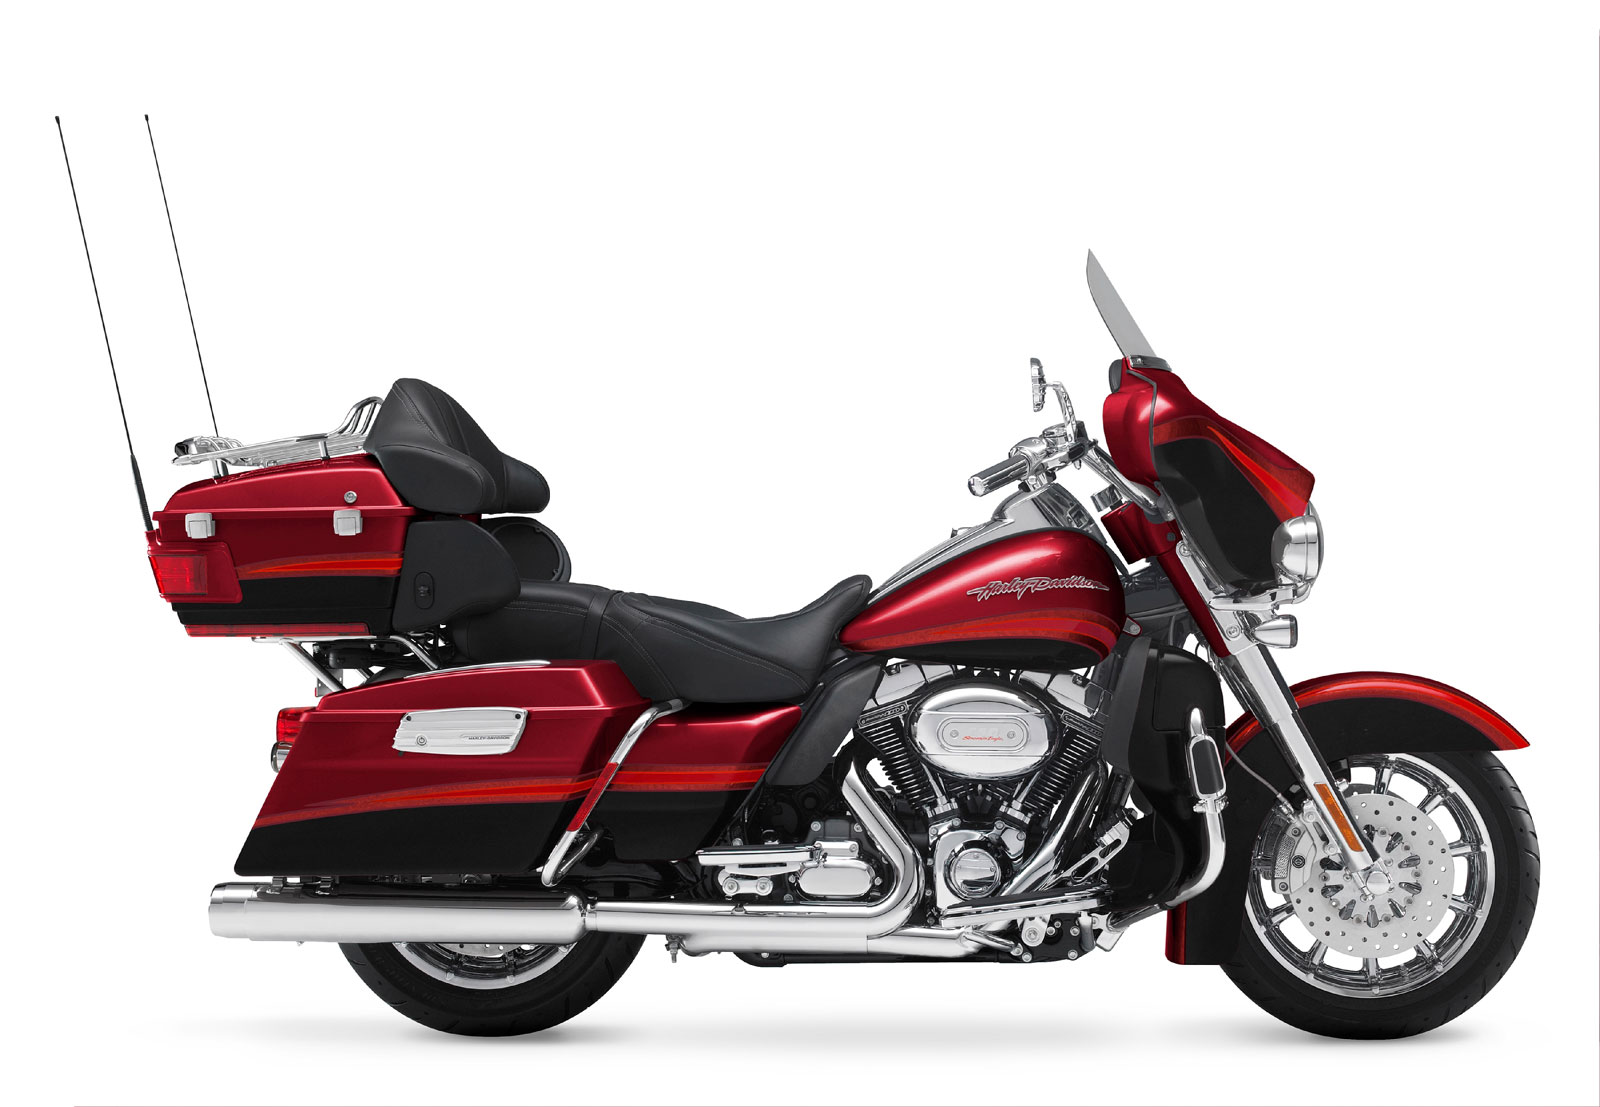 2009 harley davidson flhtcuse4 cvo ultra classic electra glide. Black Bedroom Furniture Sets. Home Design Ideas